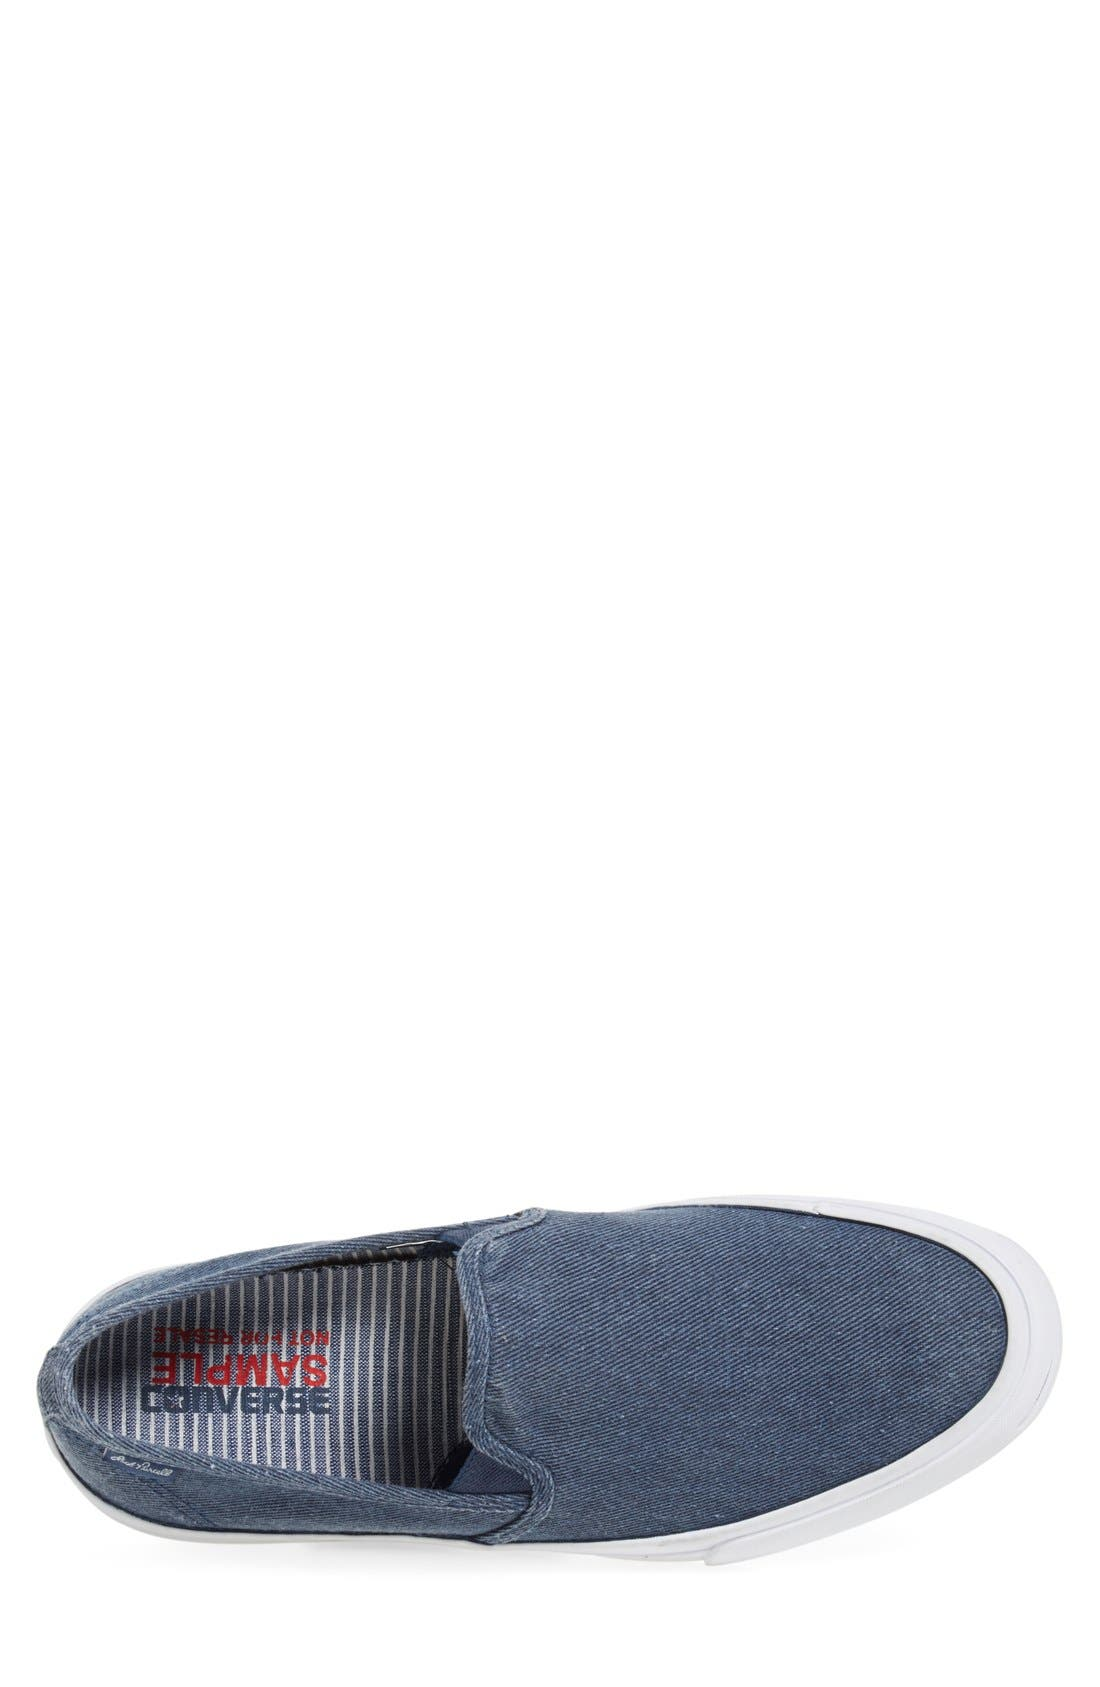 Jack Purcell II Slip-On,                             Alternate thumbnail 10, color,